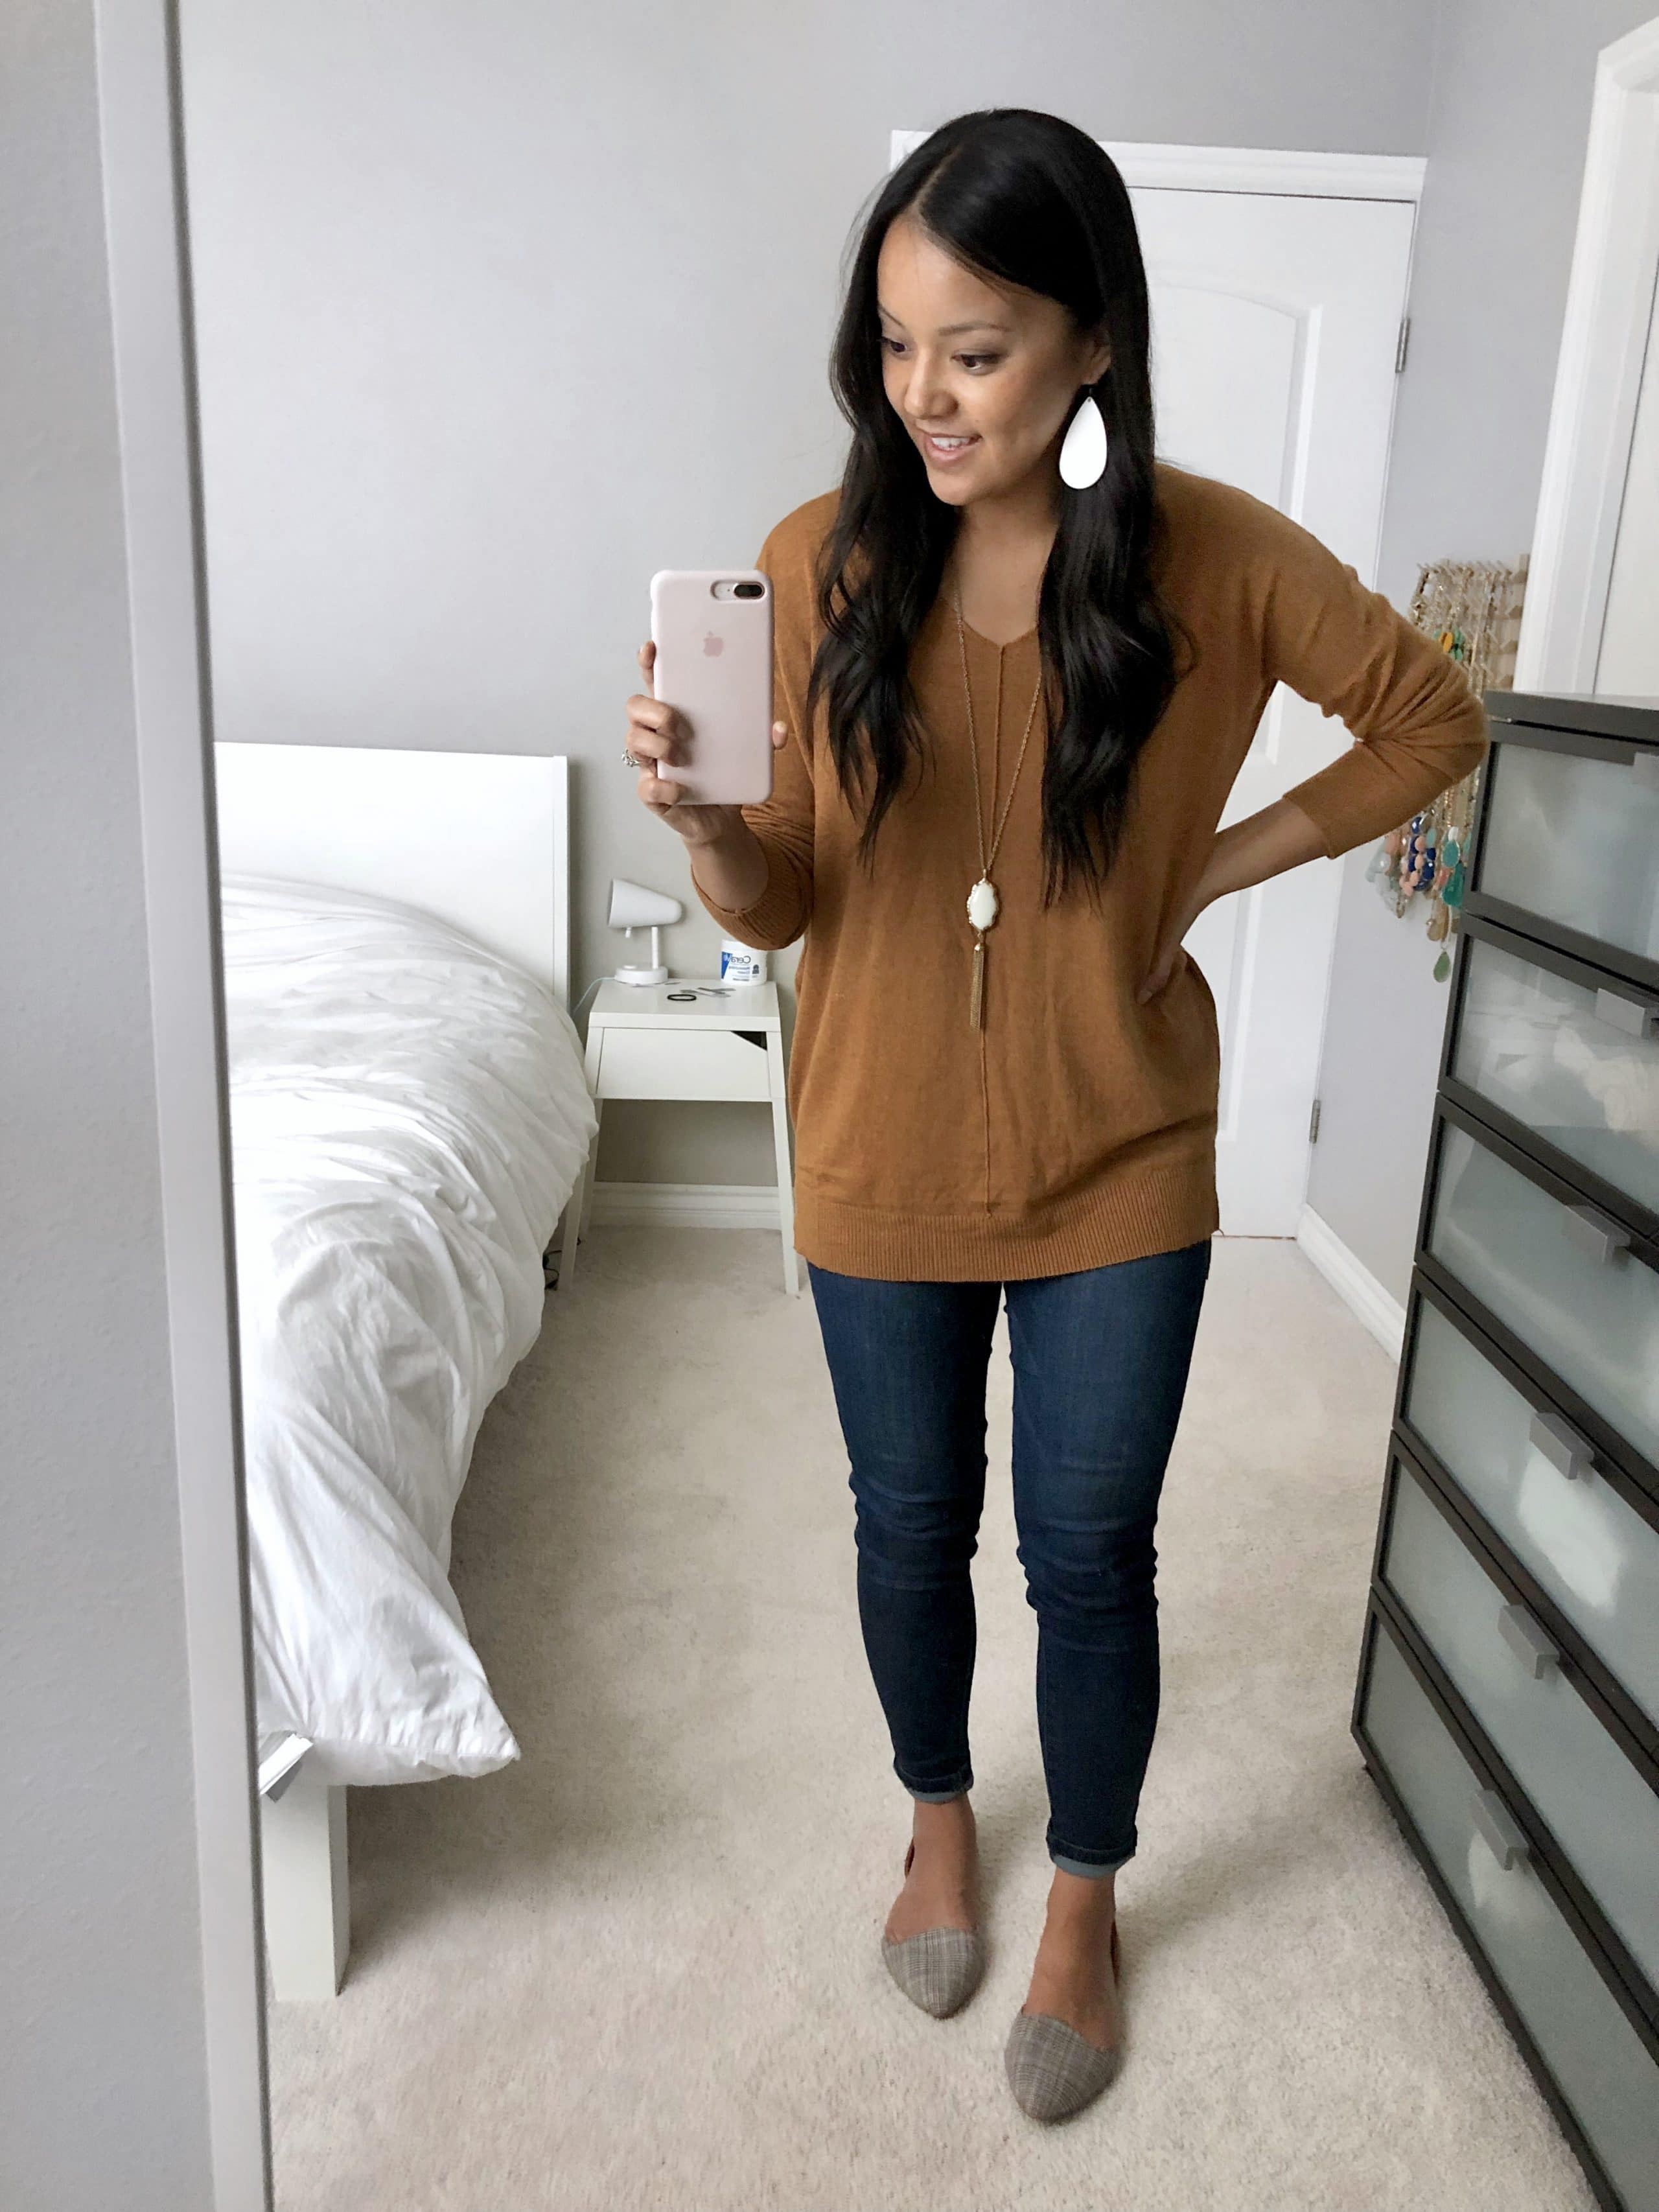 rust sweater + skinnies + flats + white accessories